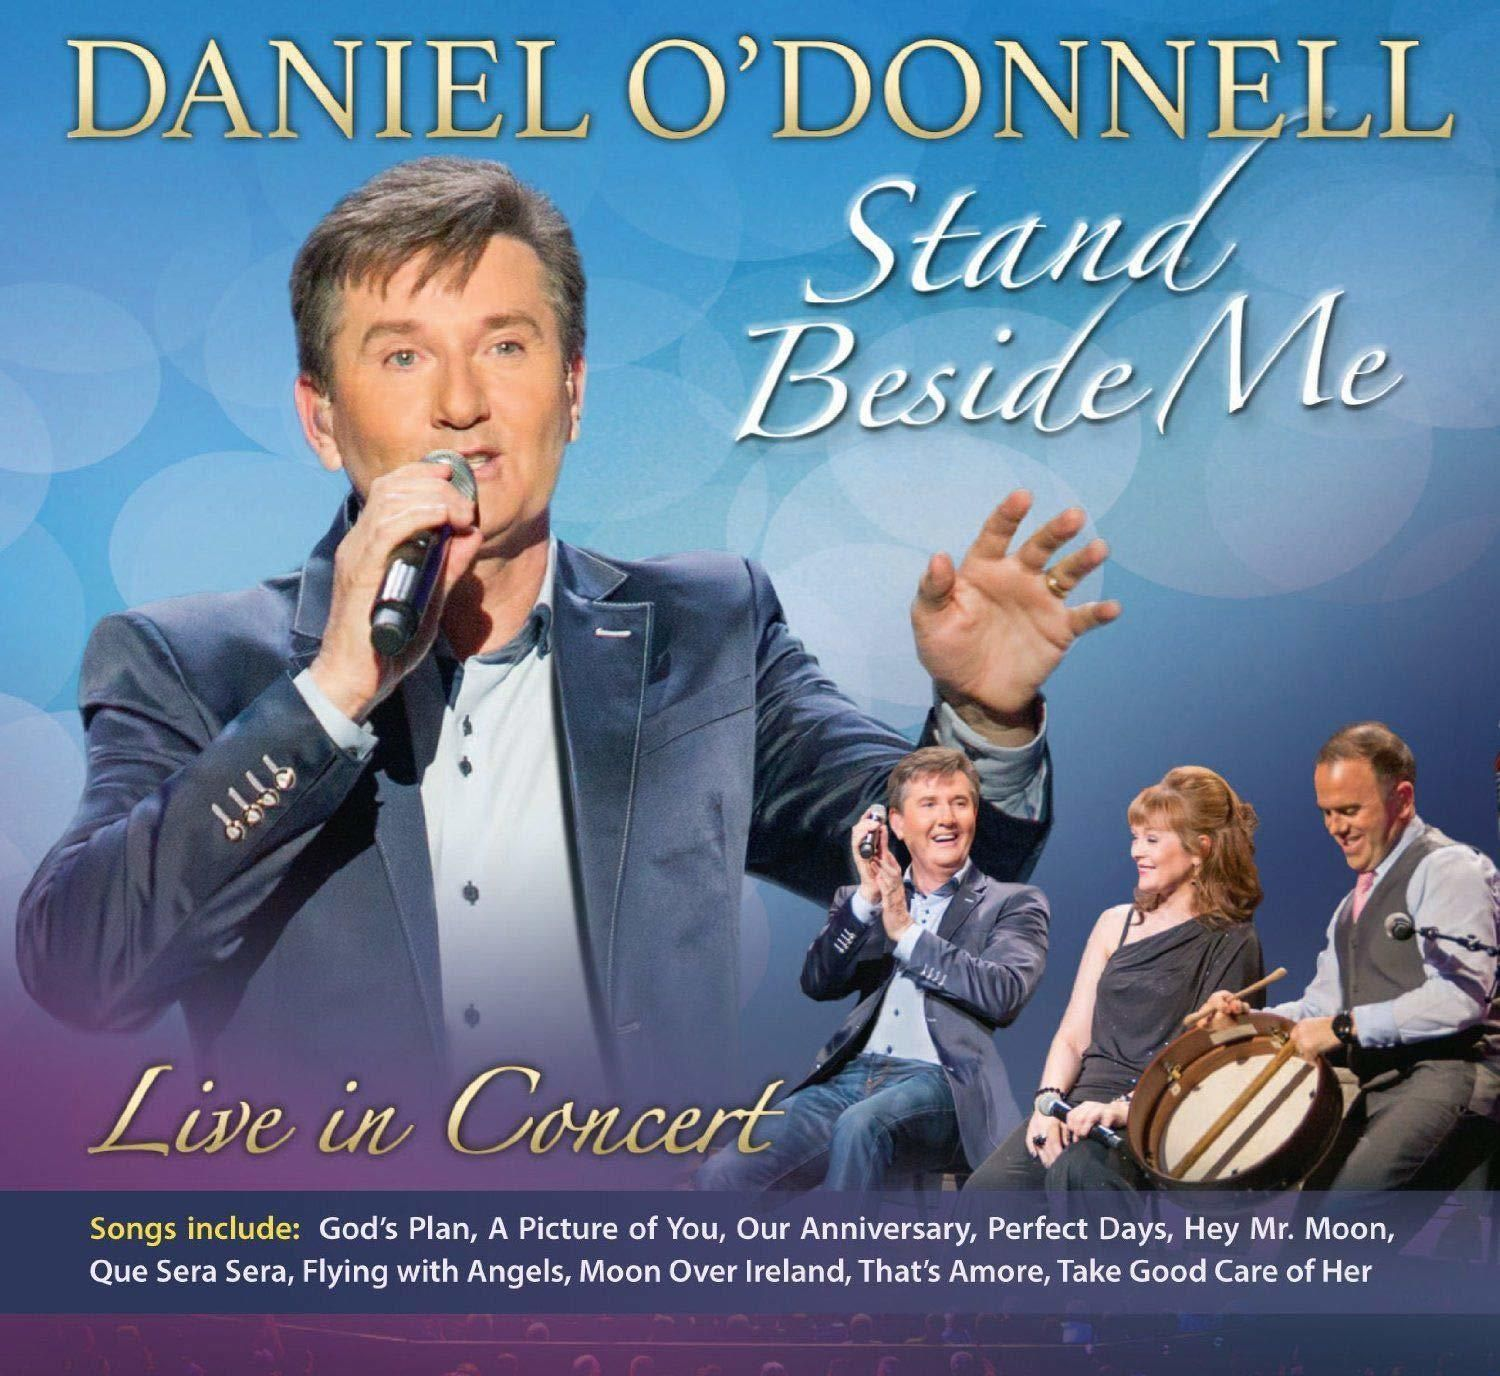 Disc: 1 1. Stand Beside Me 2. Que Sera Sera 3. A Picture Of You 4. Take Good Care Of Her 5. Erin Tennessee 6. Flying With Angels 7. Hey, Mr. Moon 8. Joke - Mrs Murphy 9. Eileen McManus (with Mary Duff) 10. Everybody's Somebody's Fool (Mary Duff) 11. Just Out Of Reach (Mary Duff) 12. I Heard The Bluebirds Sing (with Mary Duff) 13. Home I'll Be 14. Walk Tall 15. Our Anniversary 16. Perfect Days 17. Joke - Two Brothers 18. Moon Over Ireland 19. Rose Garden (Mary Duff) 20. Beautiful Sunday 21. Sweet